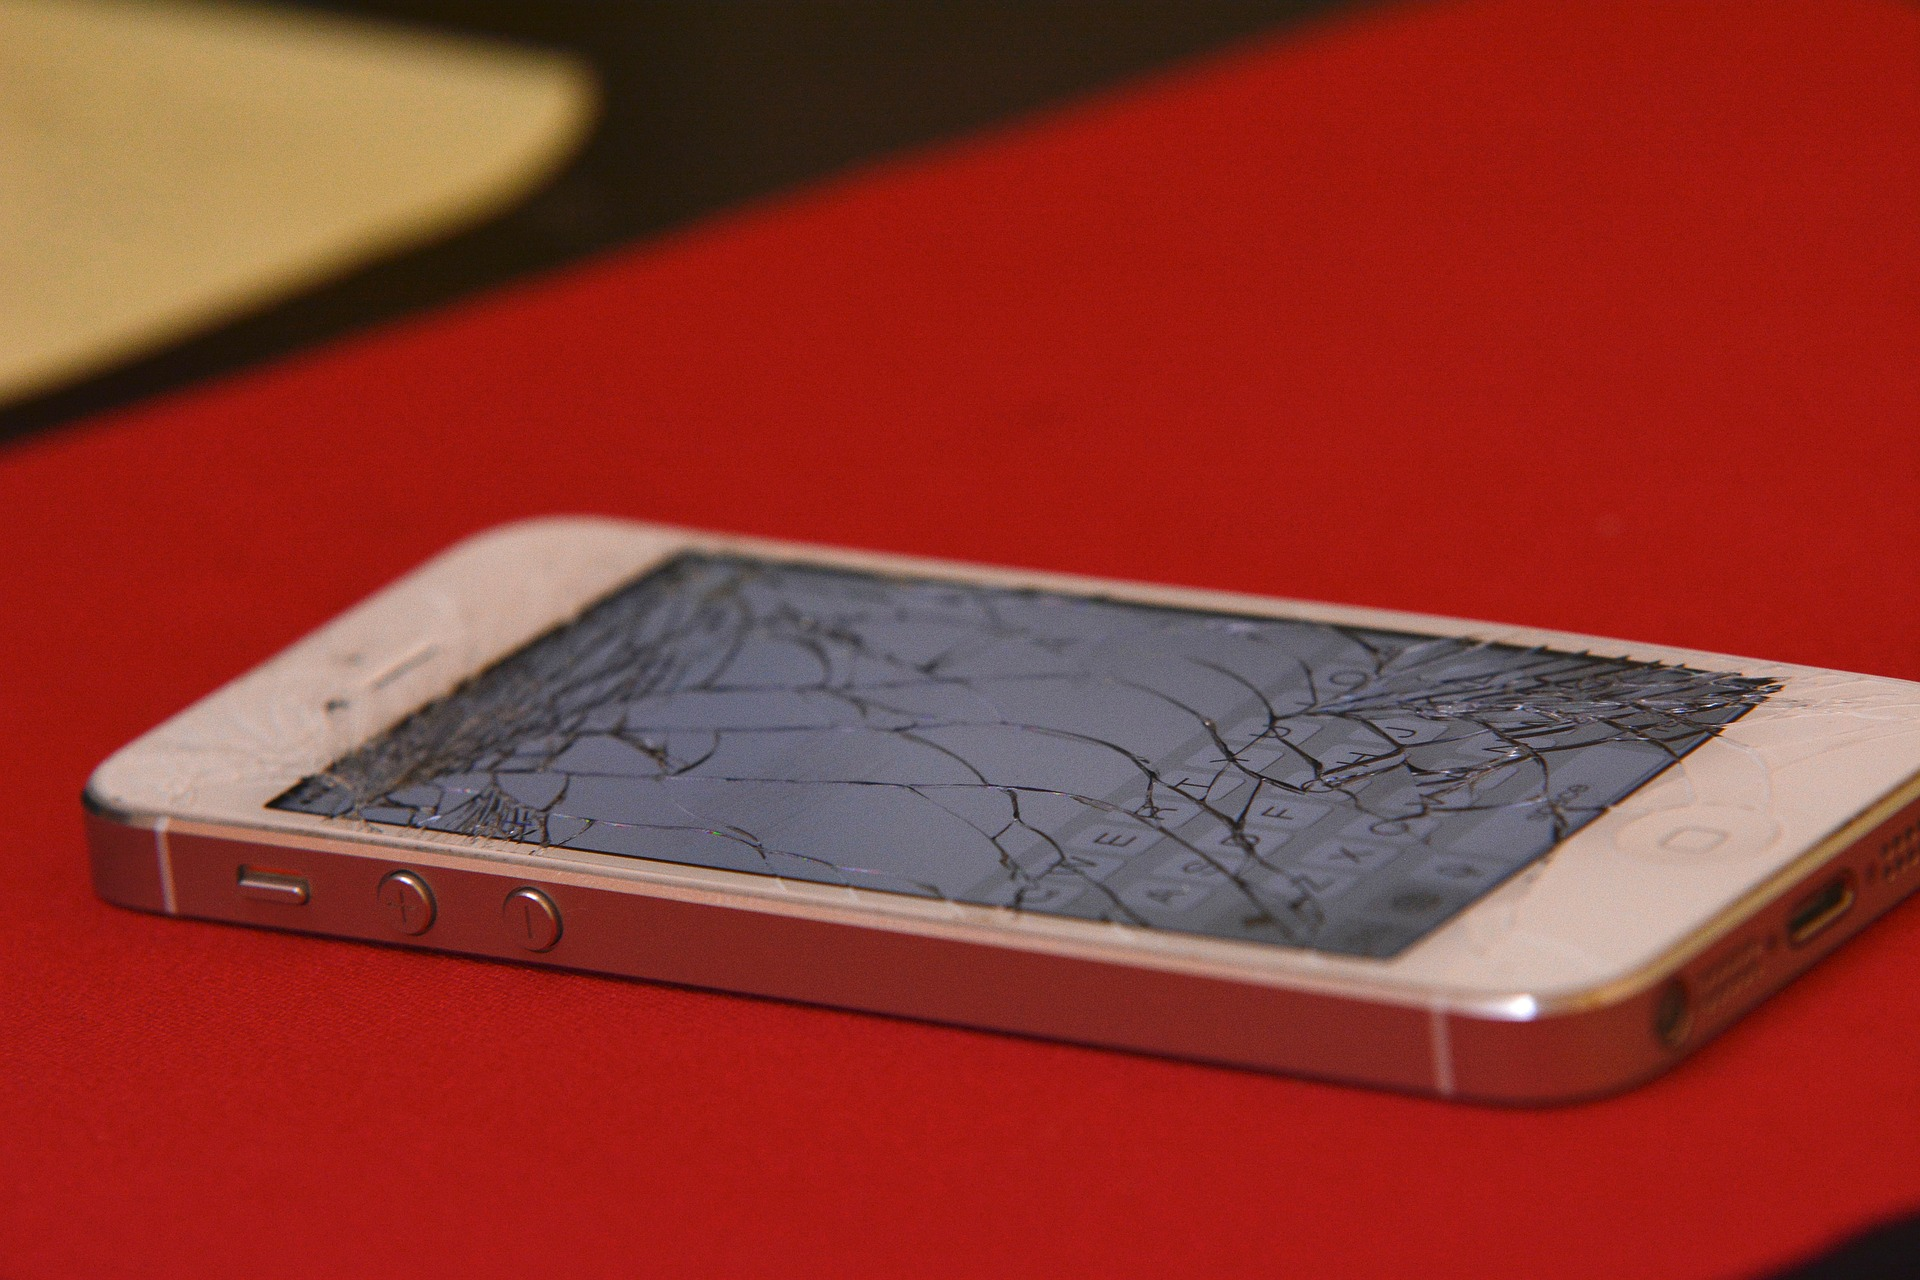 Self Healing Glass Could Mean End Of Smashed Phone Screens iphone 248906 1920